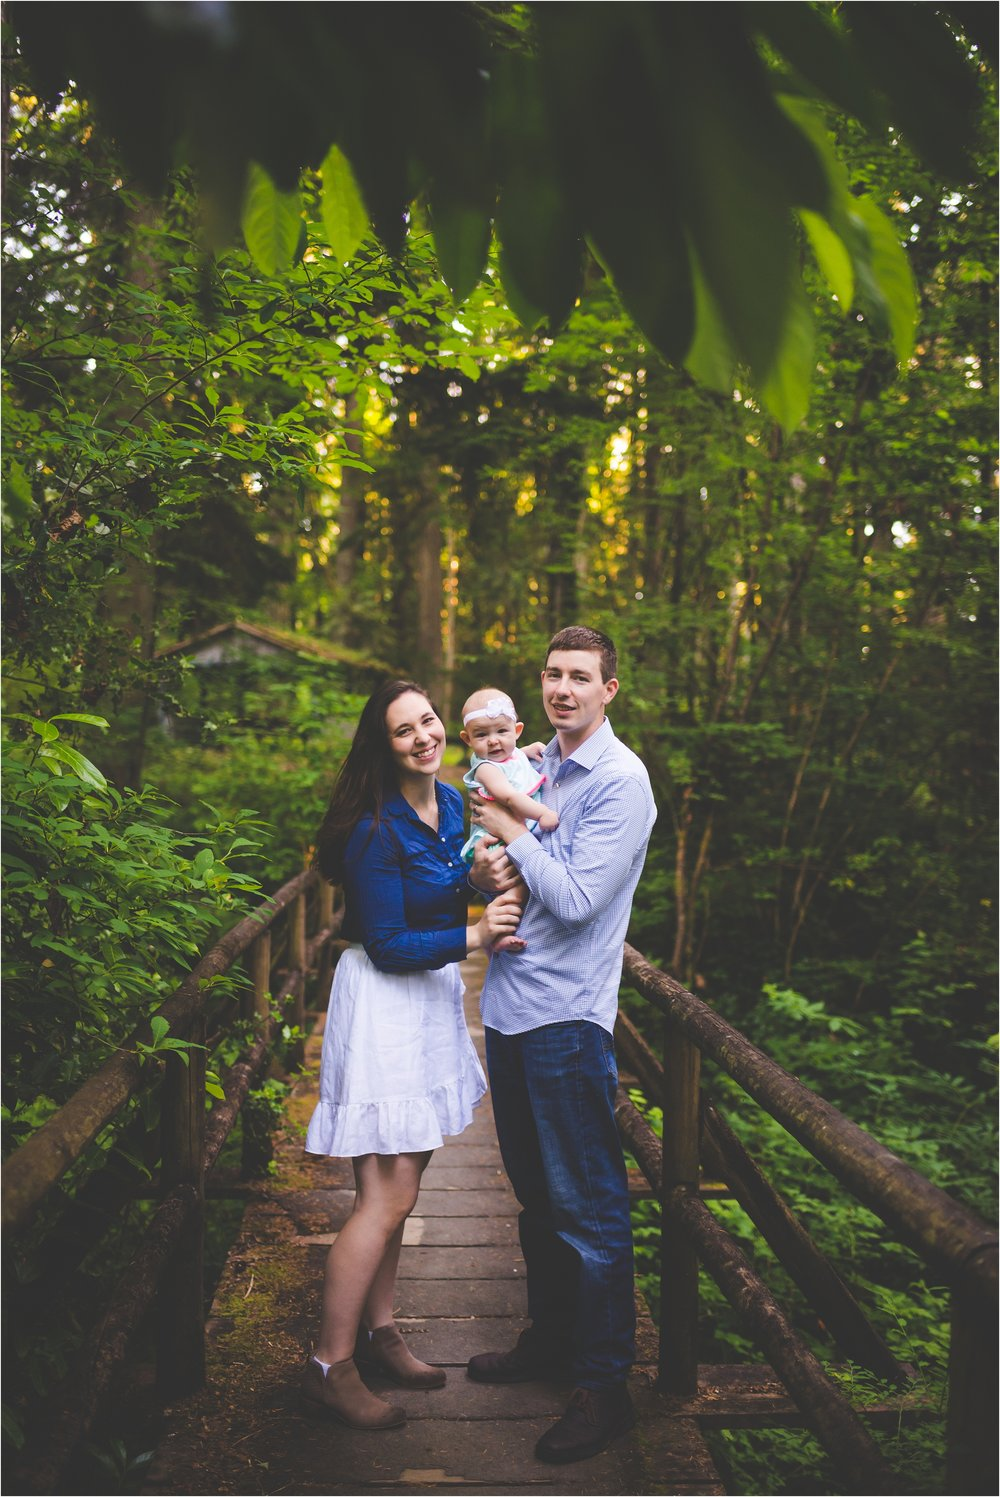 priest-point-park-olympia-wa-family-session-jannicka-mayte-anchorage-alaska-seattle-washington-family-photographer_0010.jpg